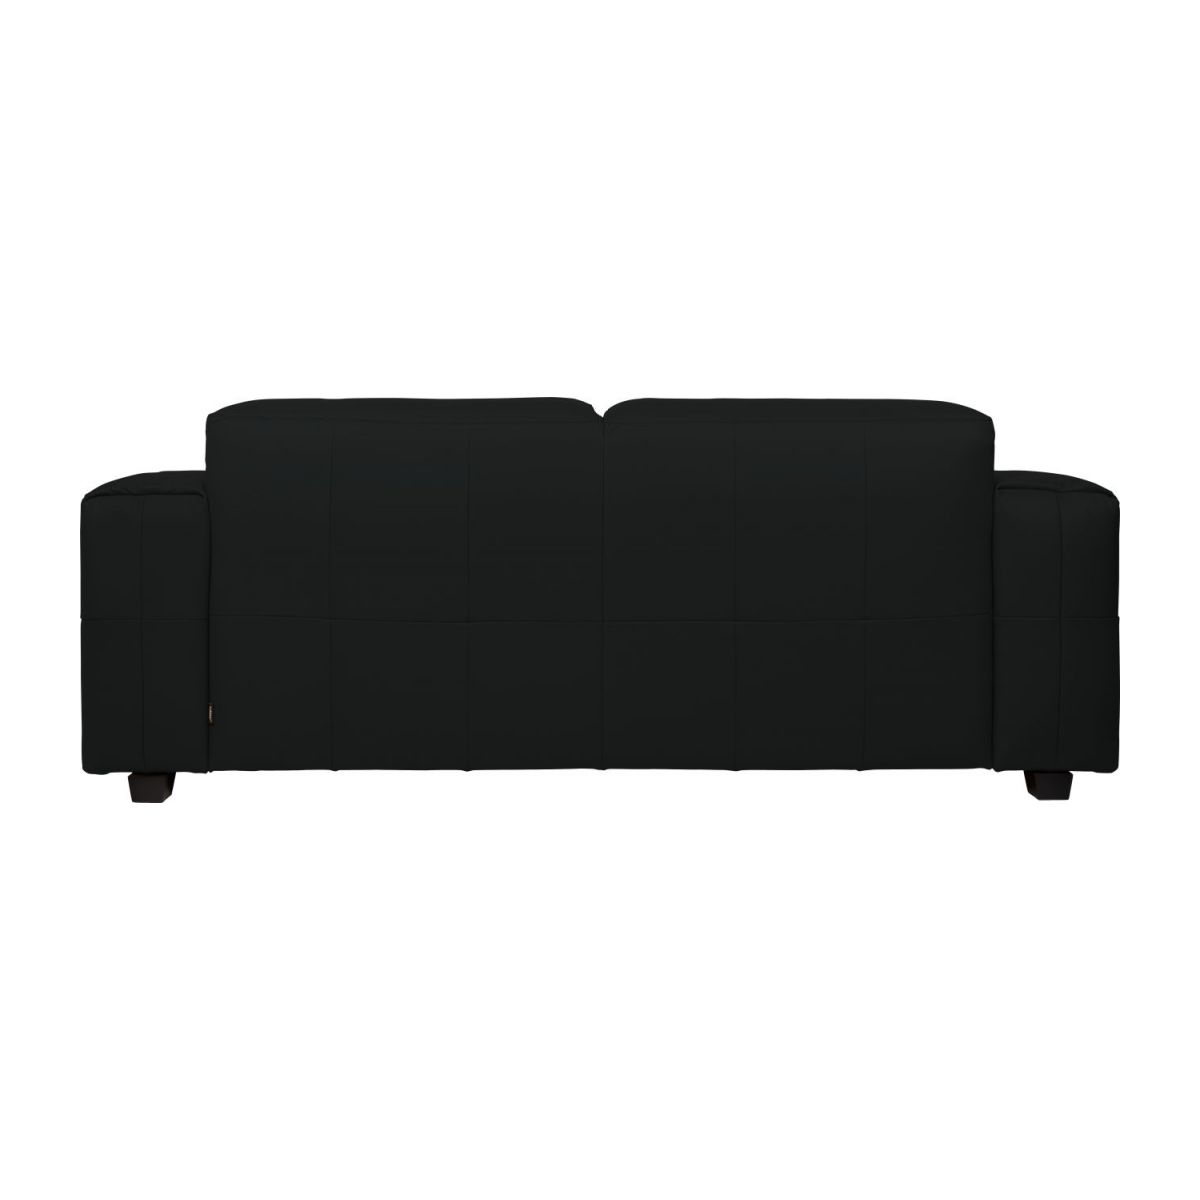 4 seater sofa in Savoy semi-aniline leather, platin black n°5